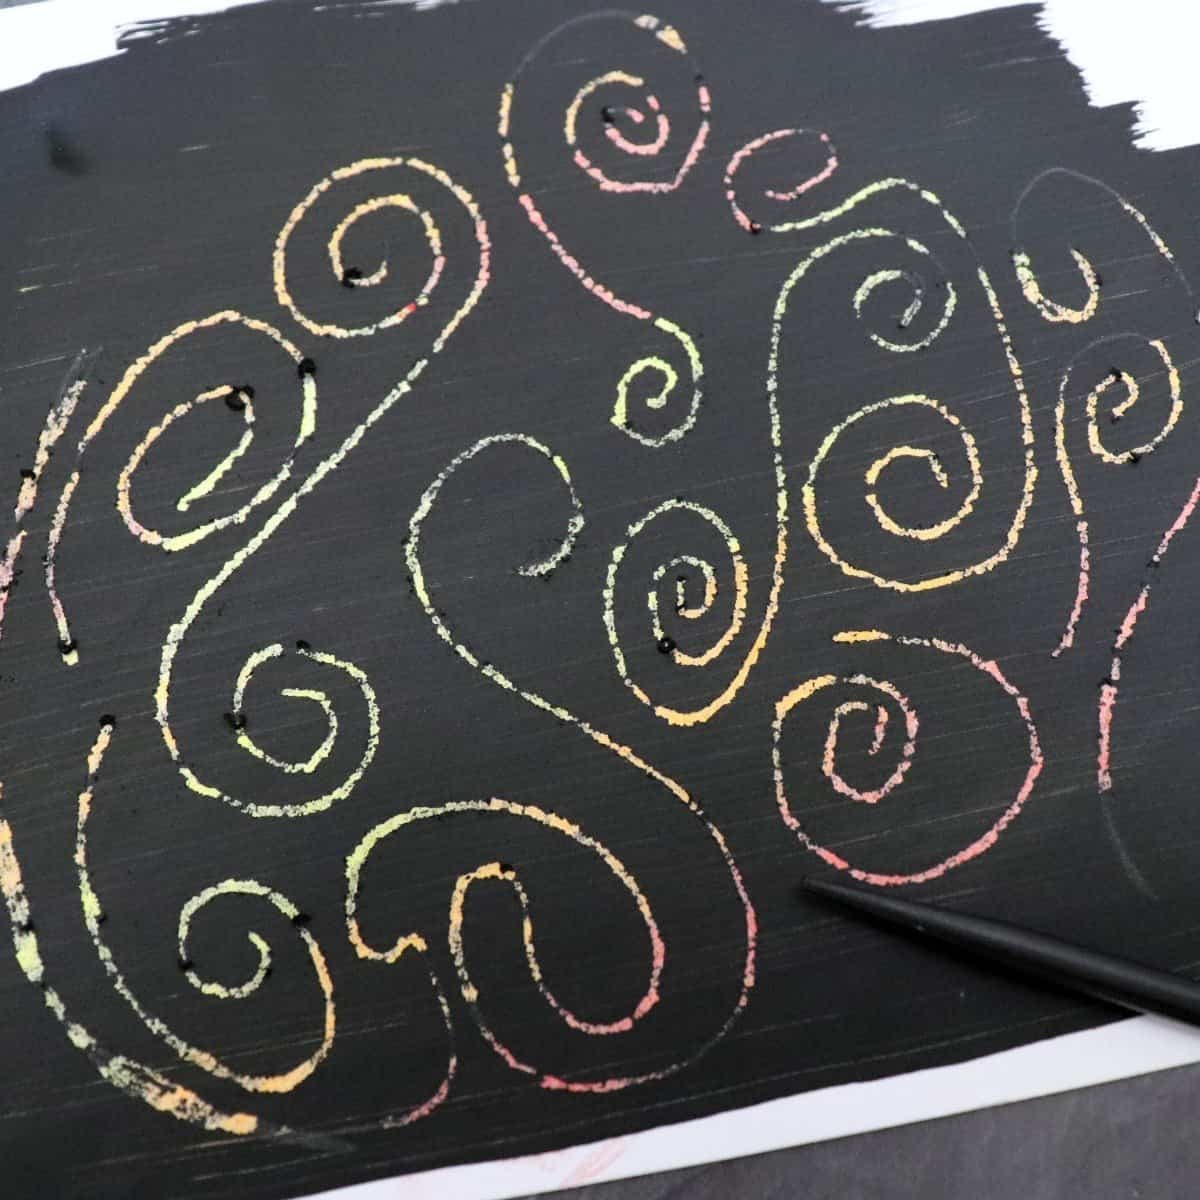 My Kids And I Really Enjoy Making Scratch Art The Paper Is So Easy To Make Too We A Bunch Of Sheets Then Have Fun Creating Colorful